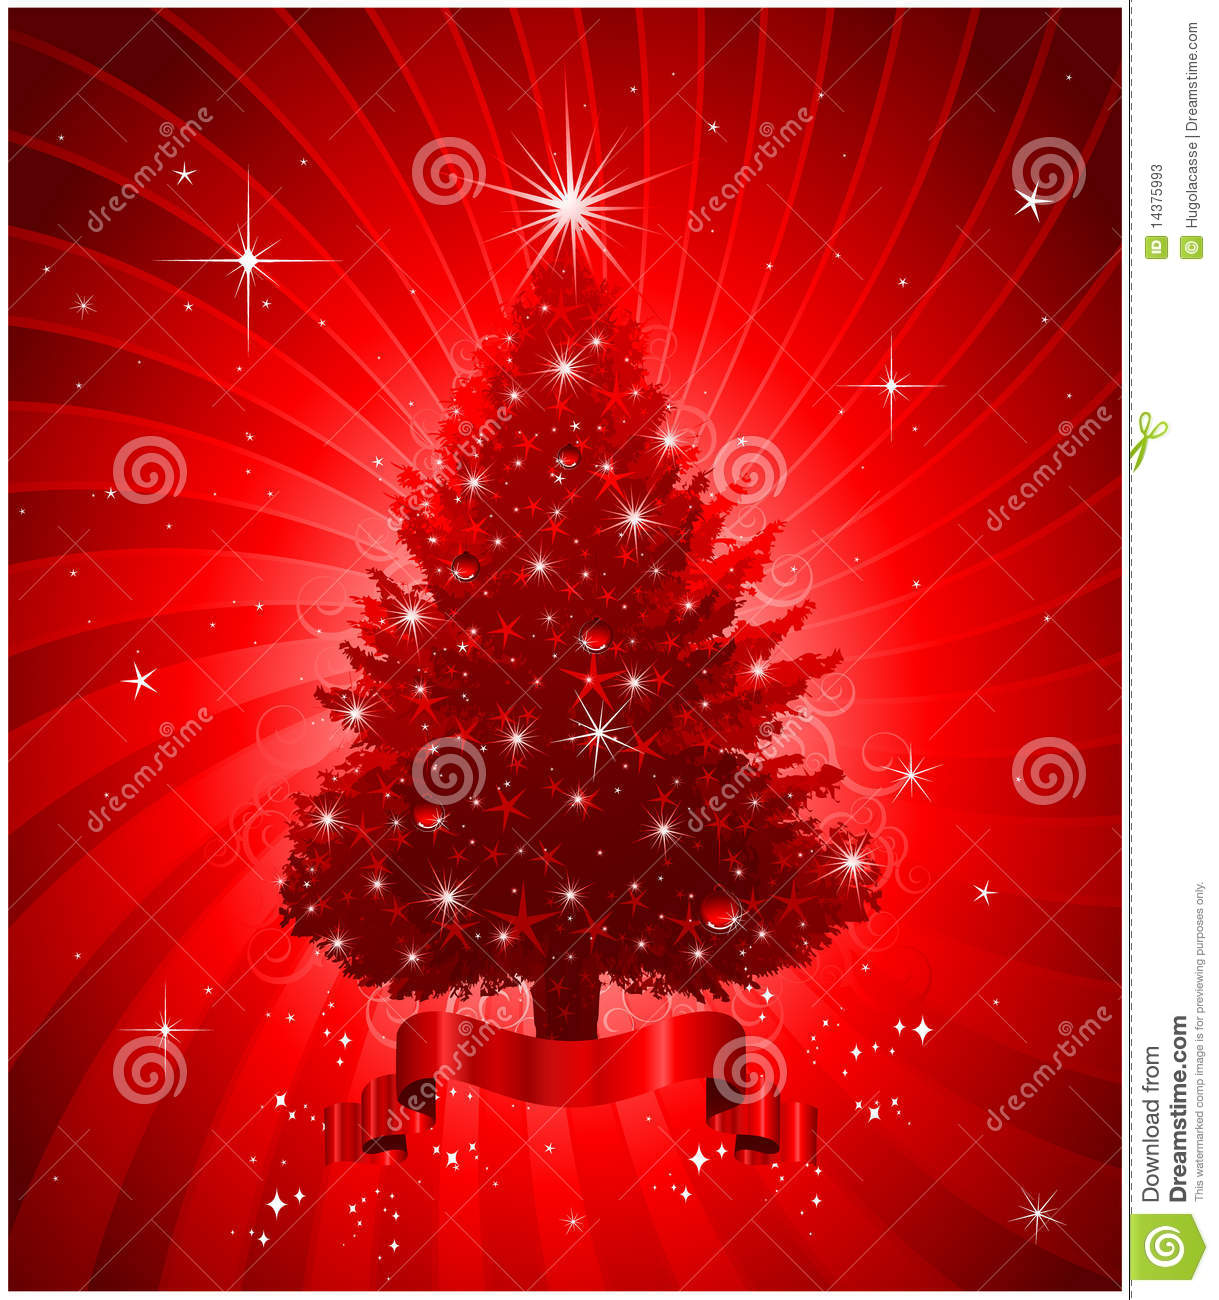 red christmas tree background - photo #18